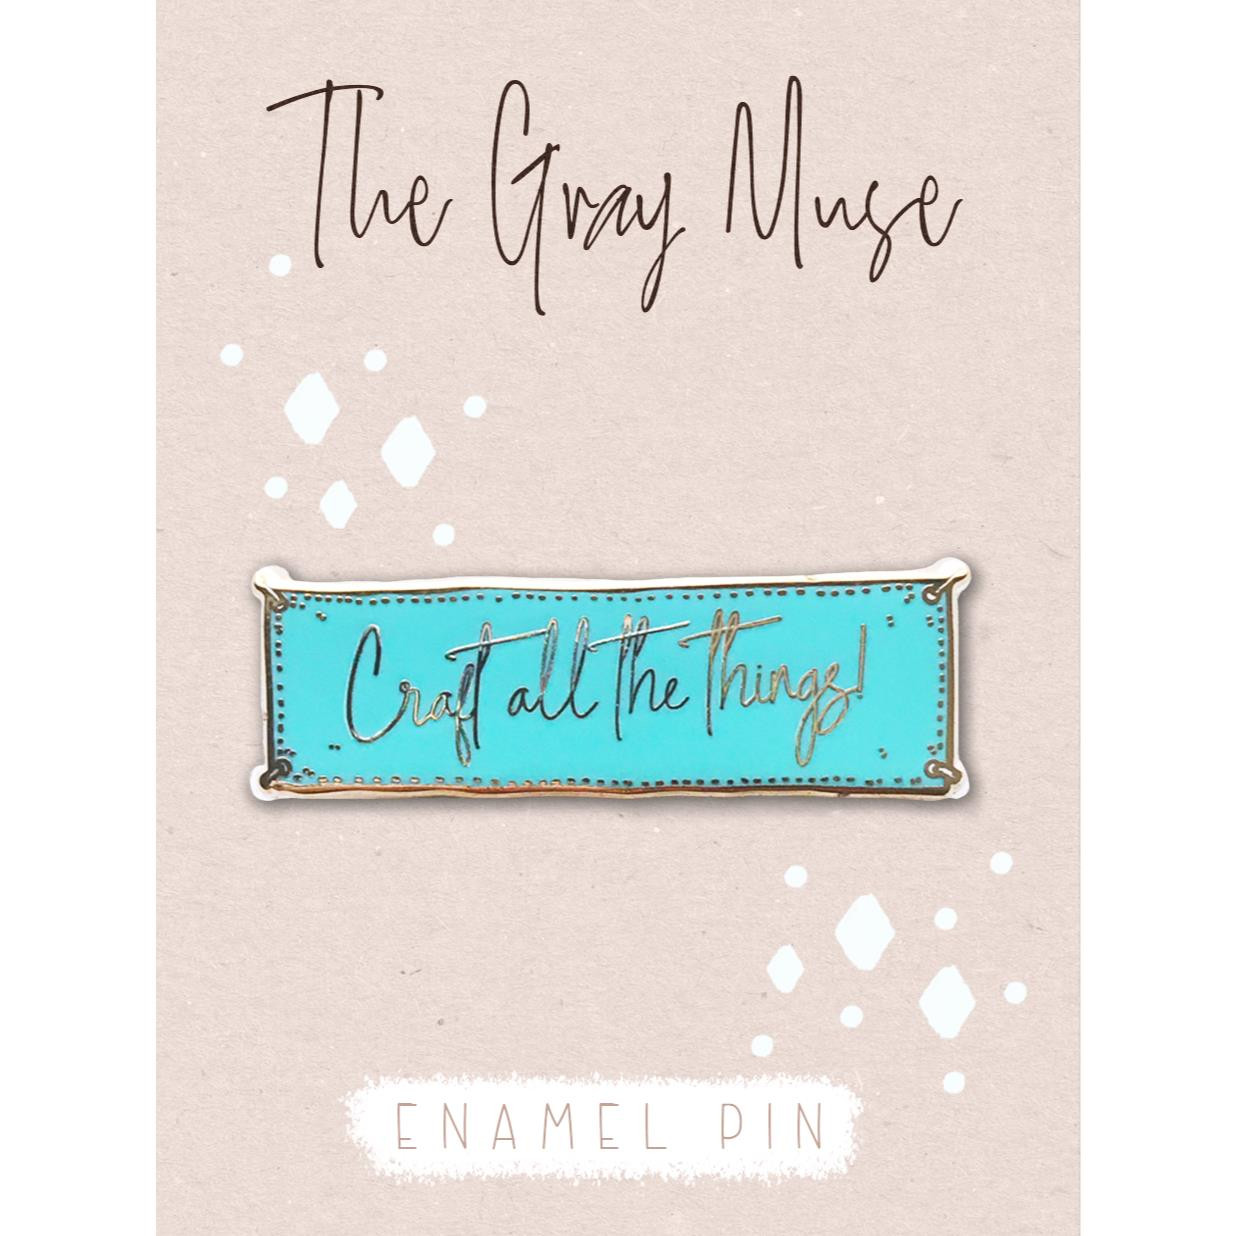 Craft All the Things (Turquoise) Magnet Pin, The Gray Muse Enamel Pins (Retiring)